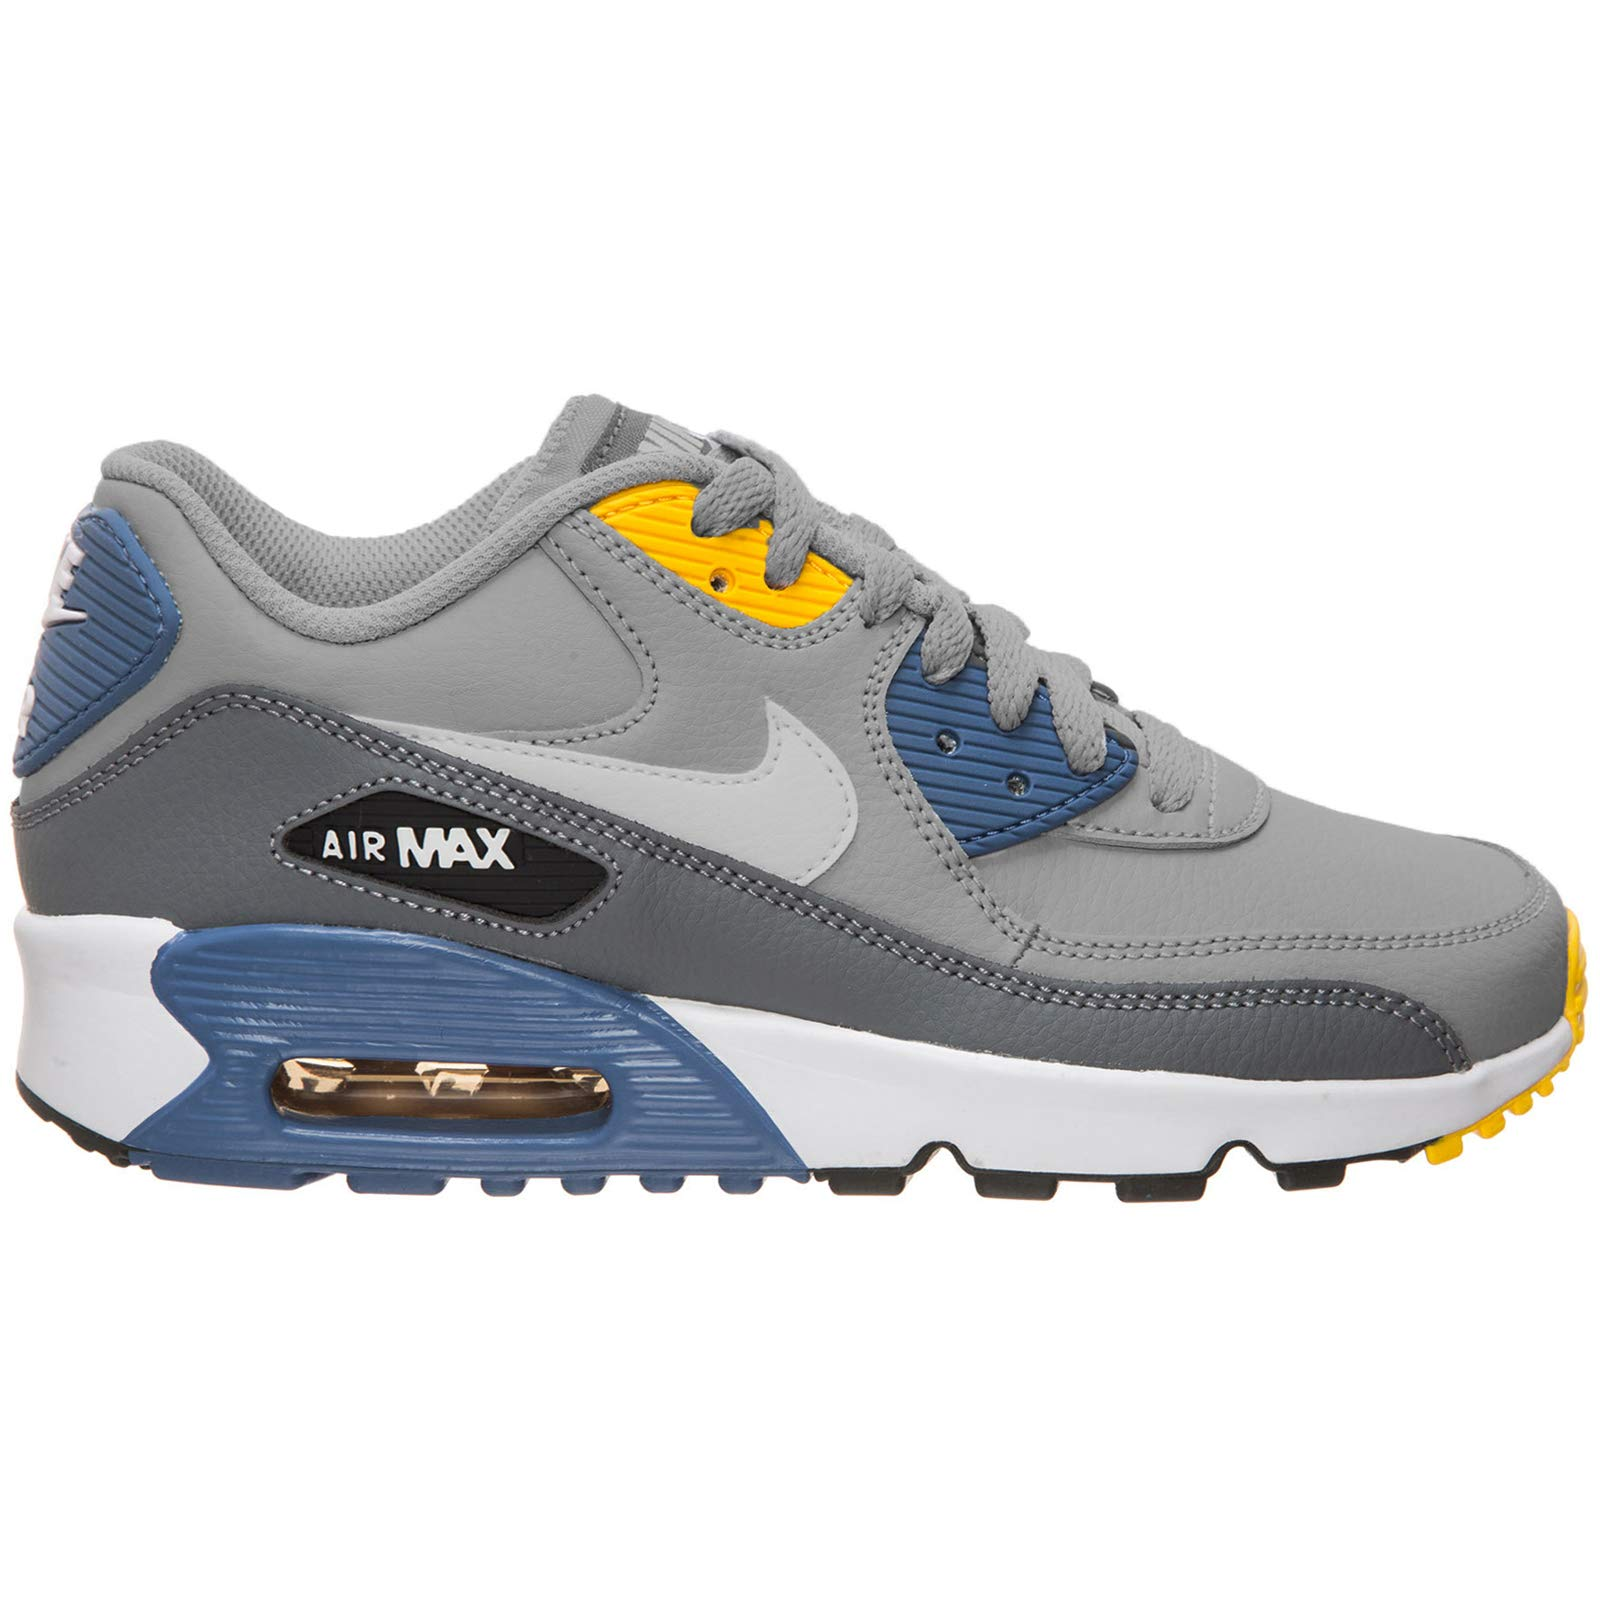 Nike Youth Air Max 90 LTR Leather Wolf Grey Indigo Trainers 6.5 US